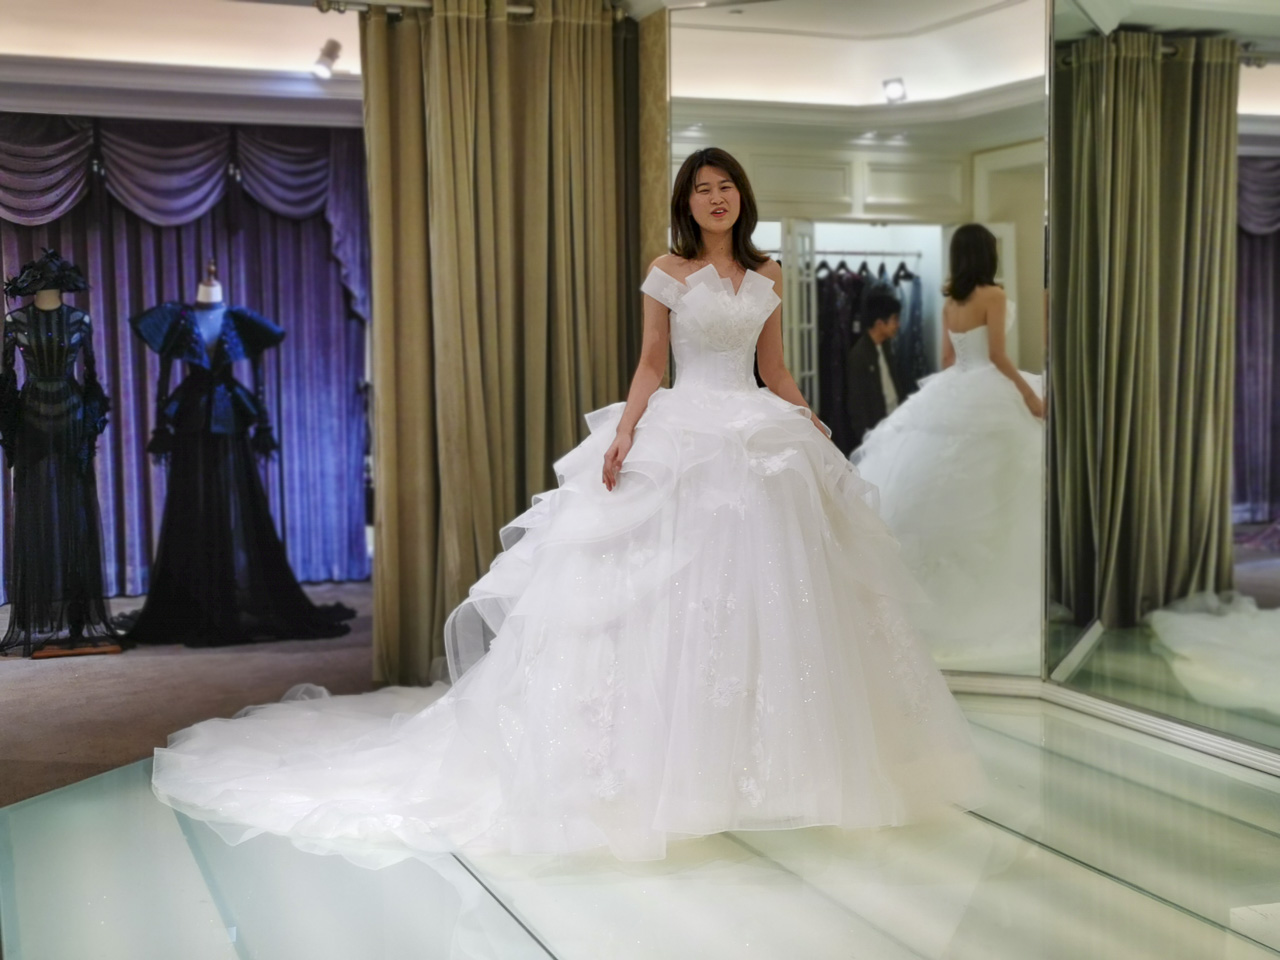 The Wedding Dress Room at Jusere